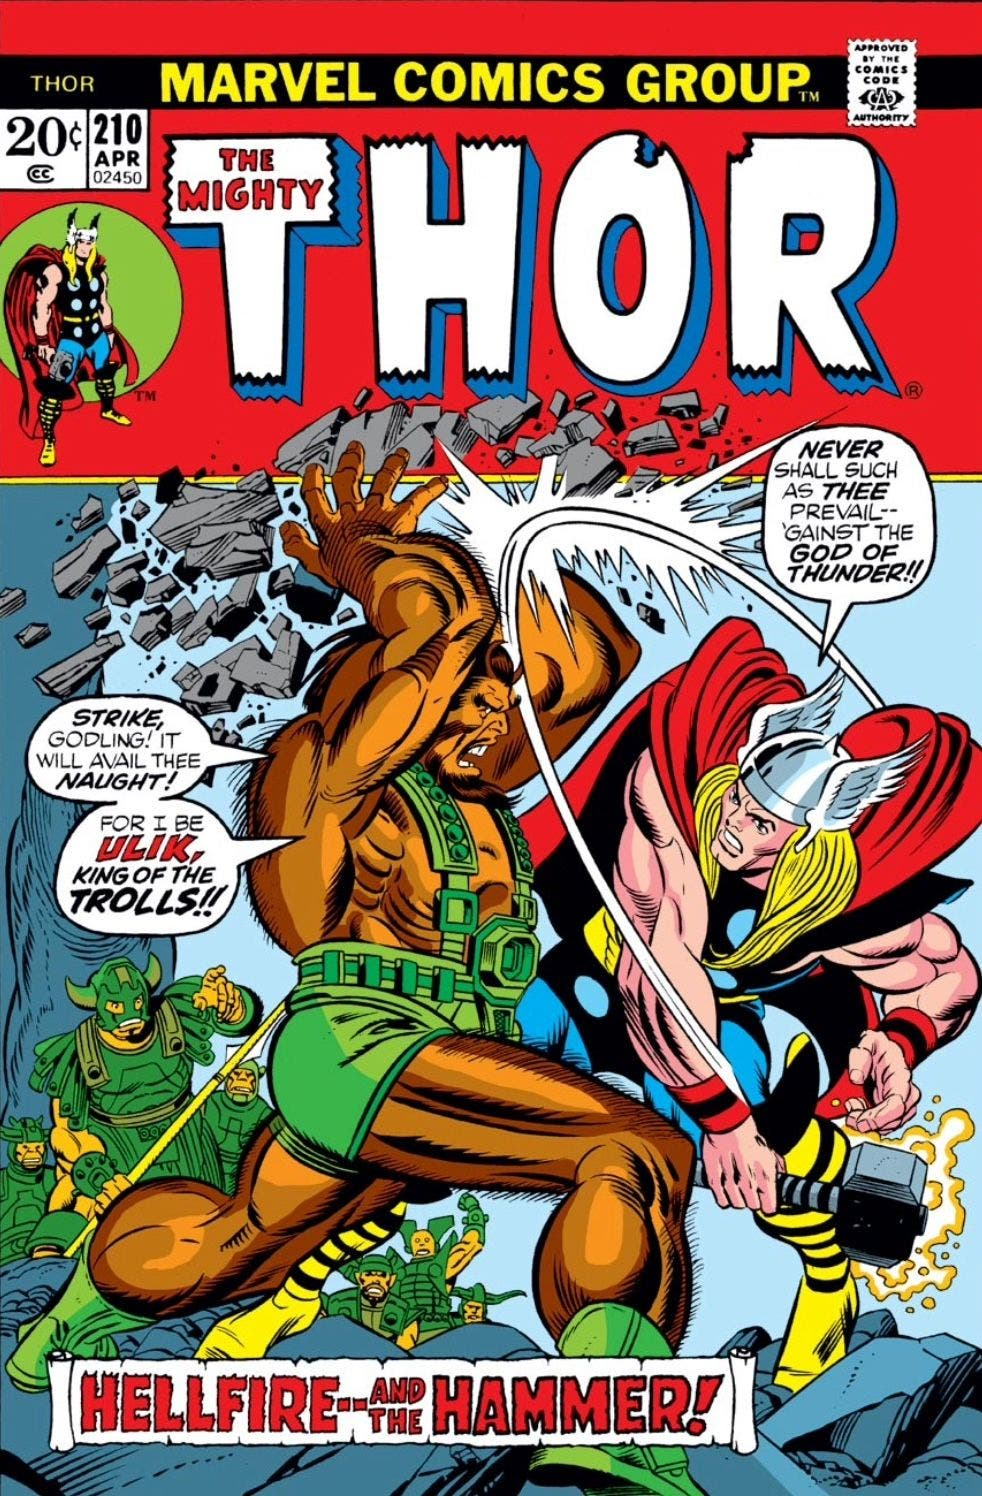 The Mighty Thor 210